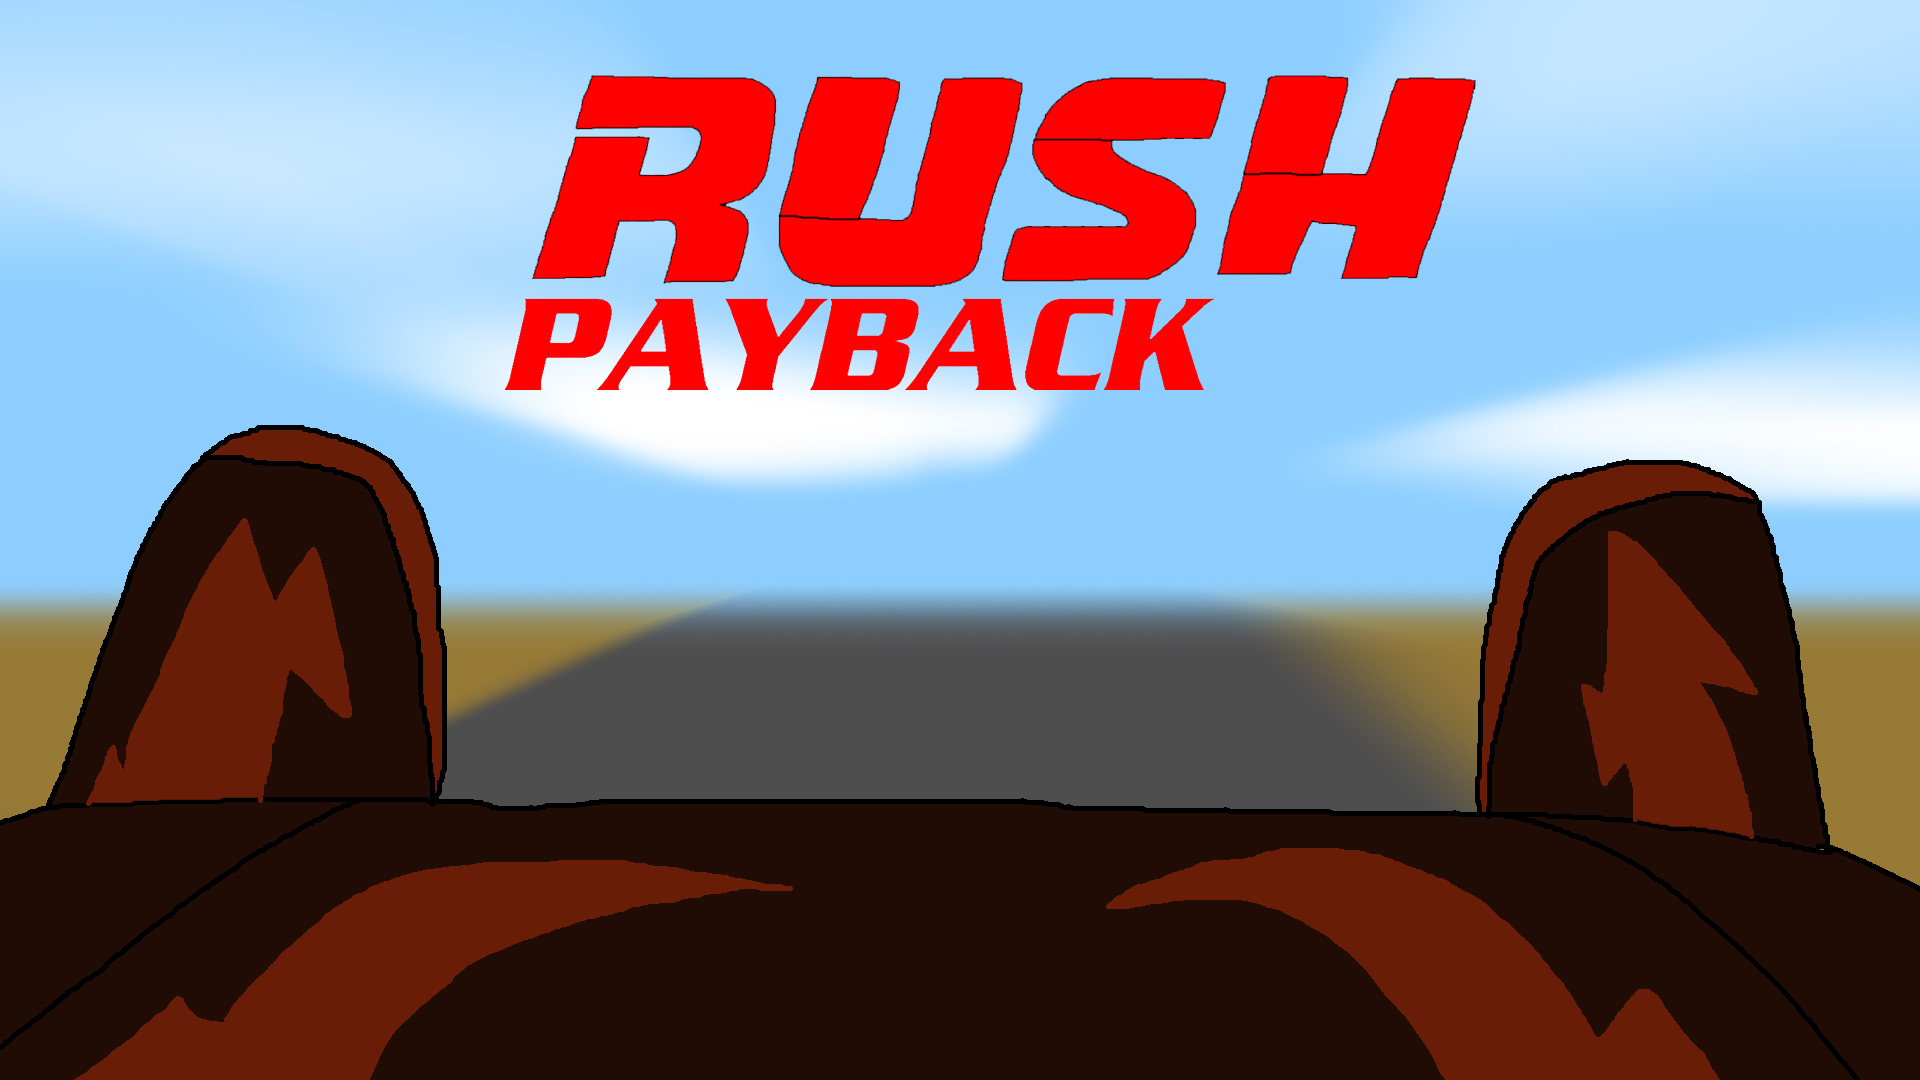 RUSH Payback Wallpaper 1 by Rainbow-Dash-Rockz